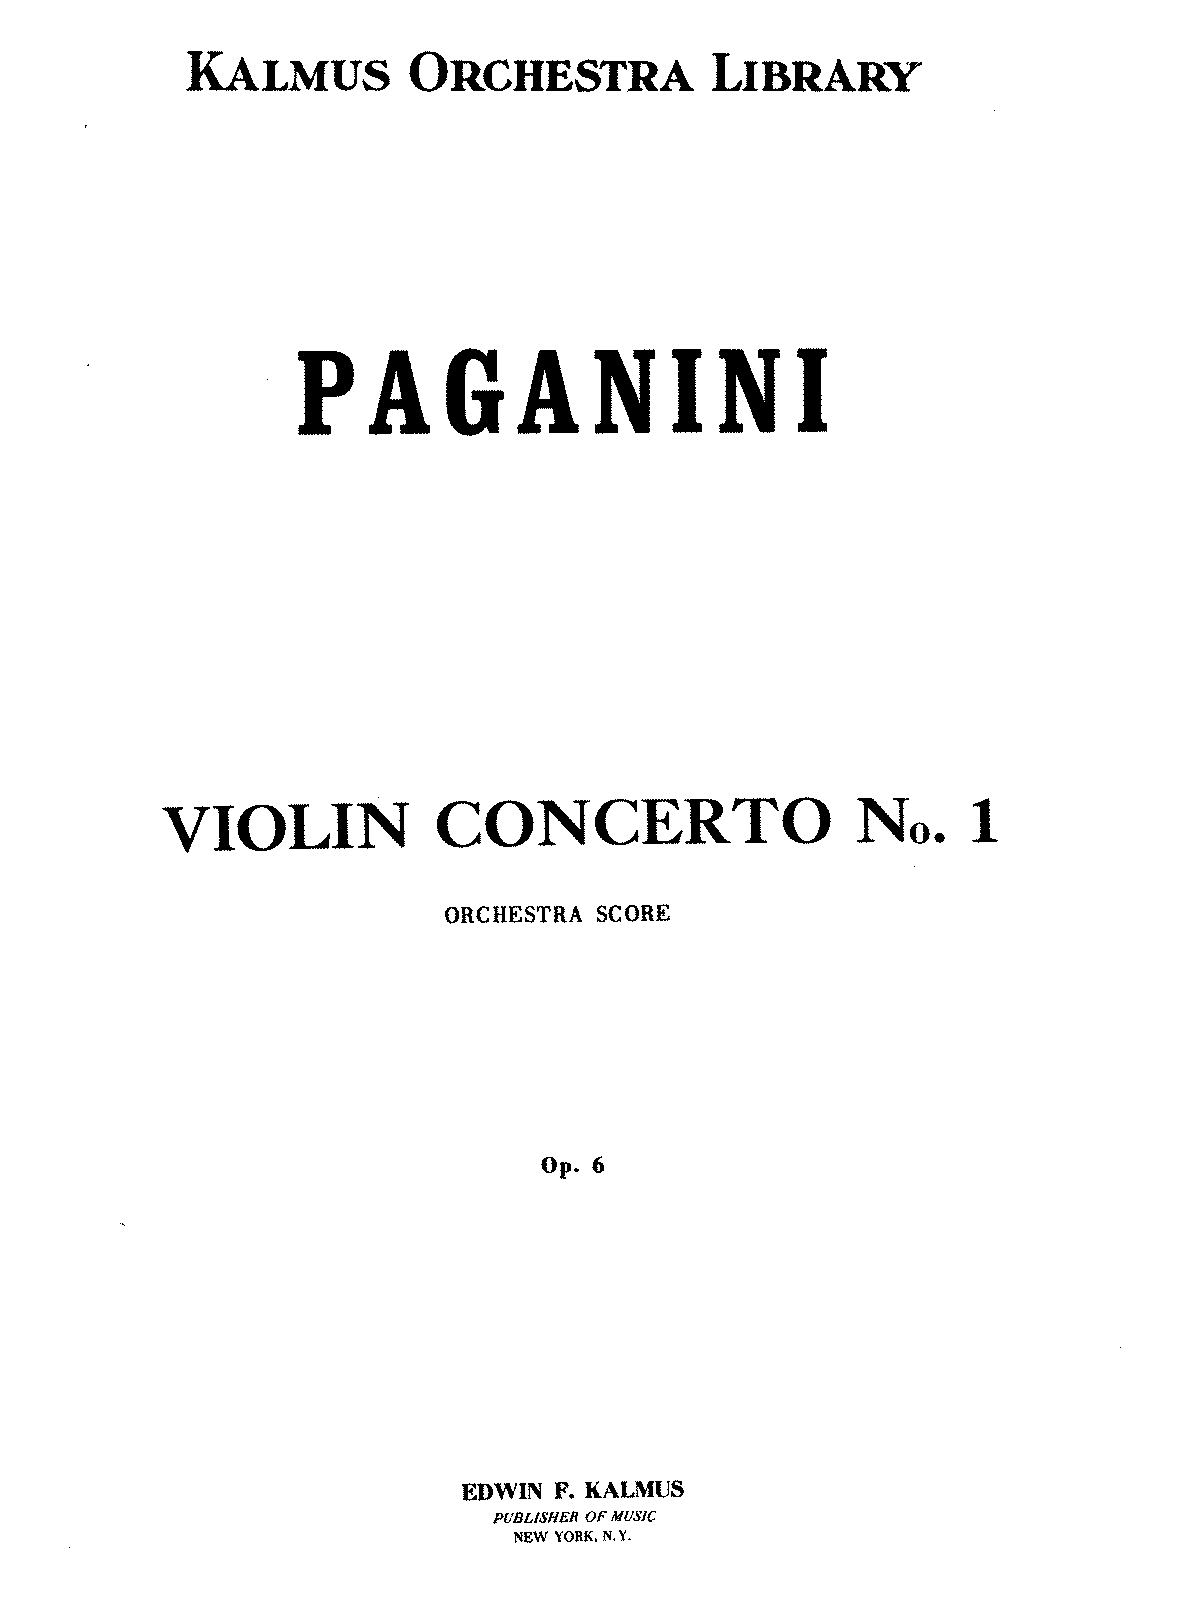 PMLP30286-Paganini - Violin Concerto No1 Op6 D major 0 Full Score.pdf